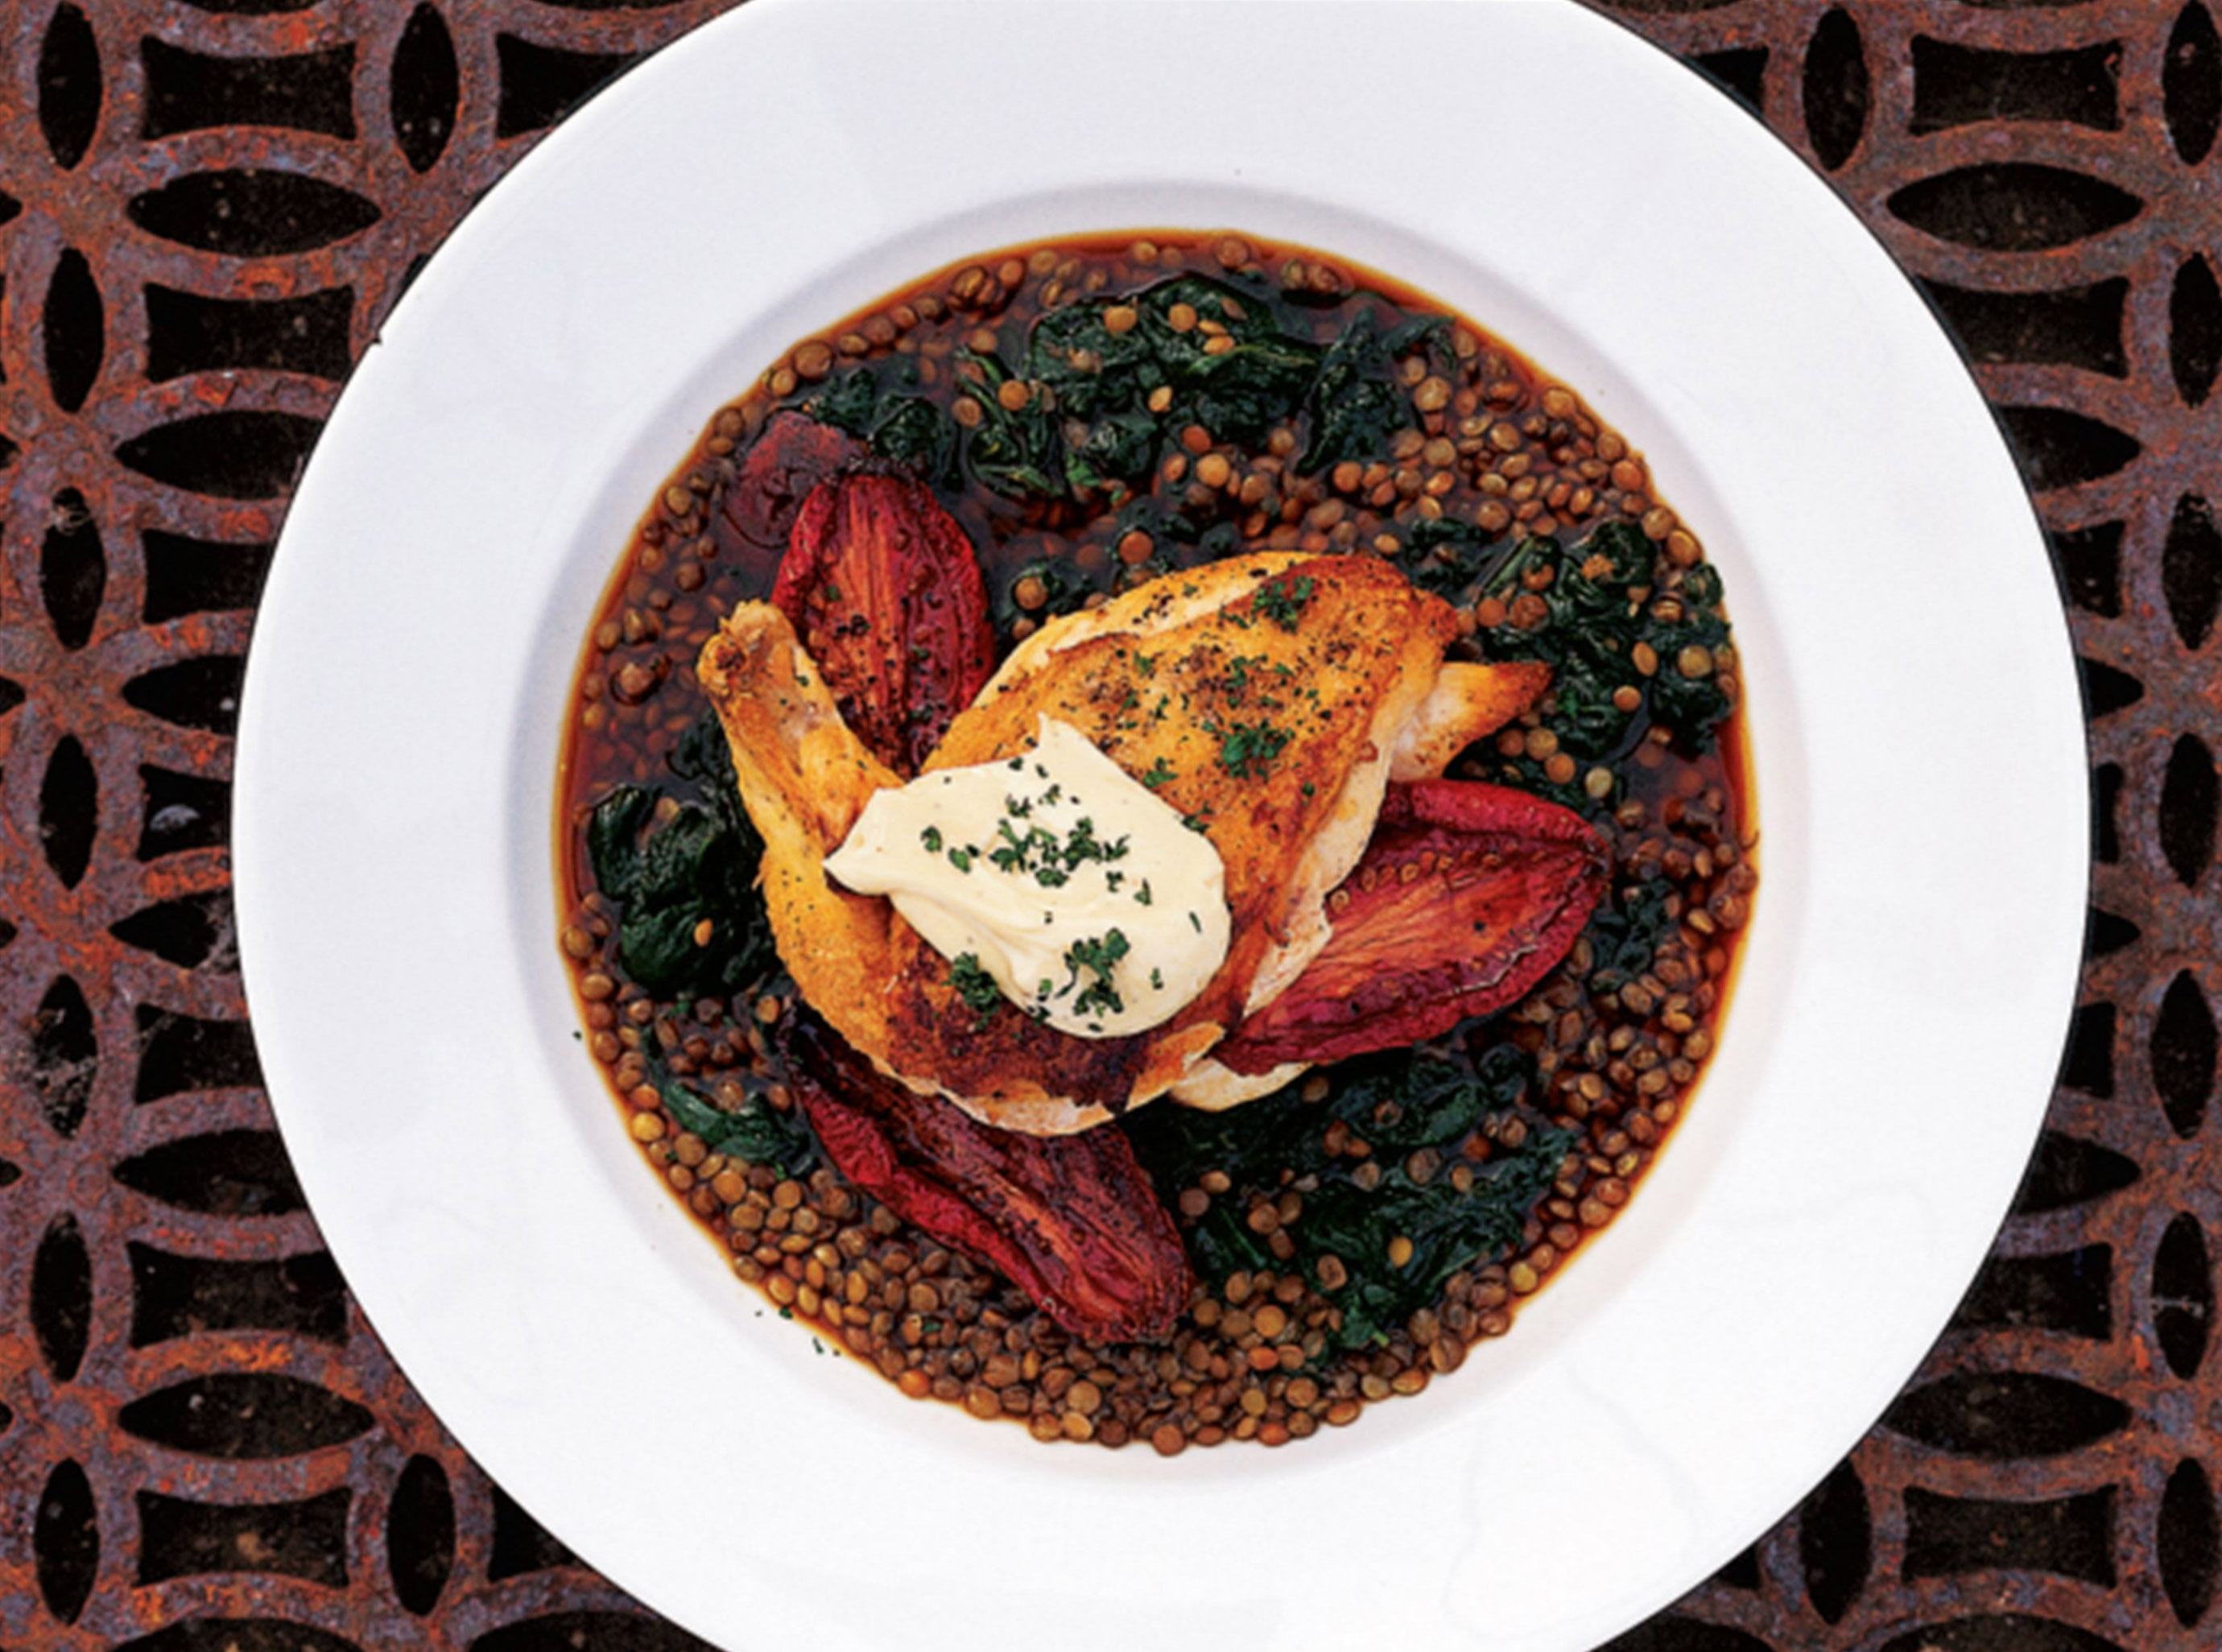 Pan-roasted chicken with lentils, roasted tomatoes and basil oil